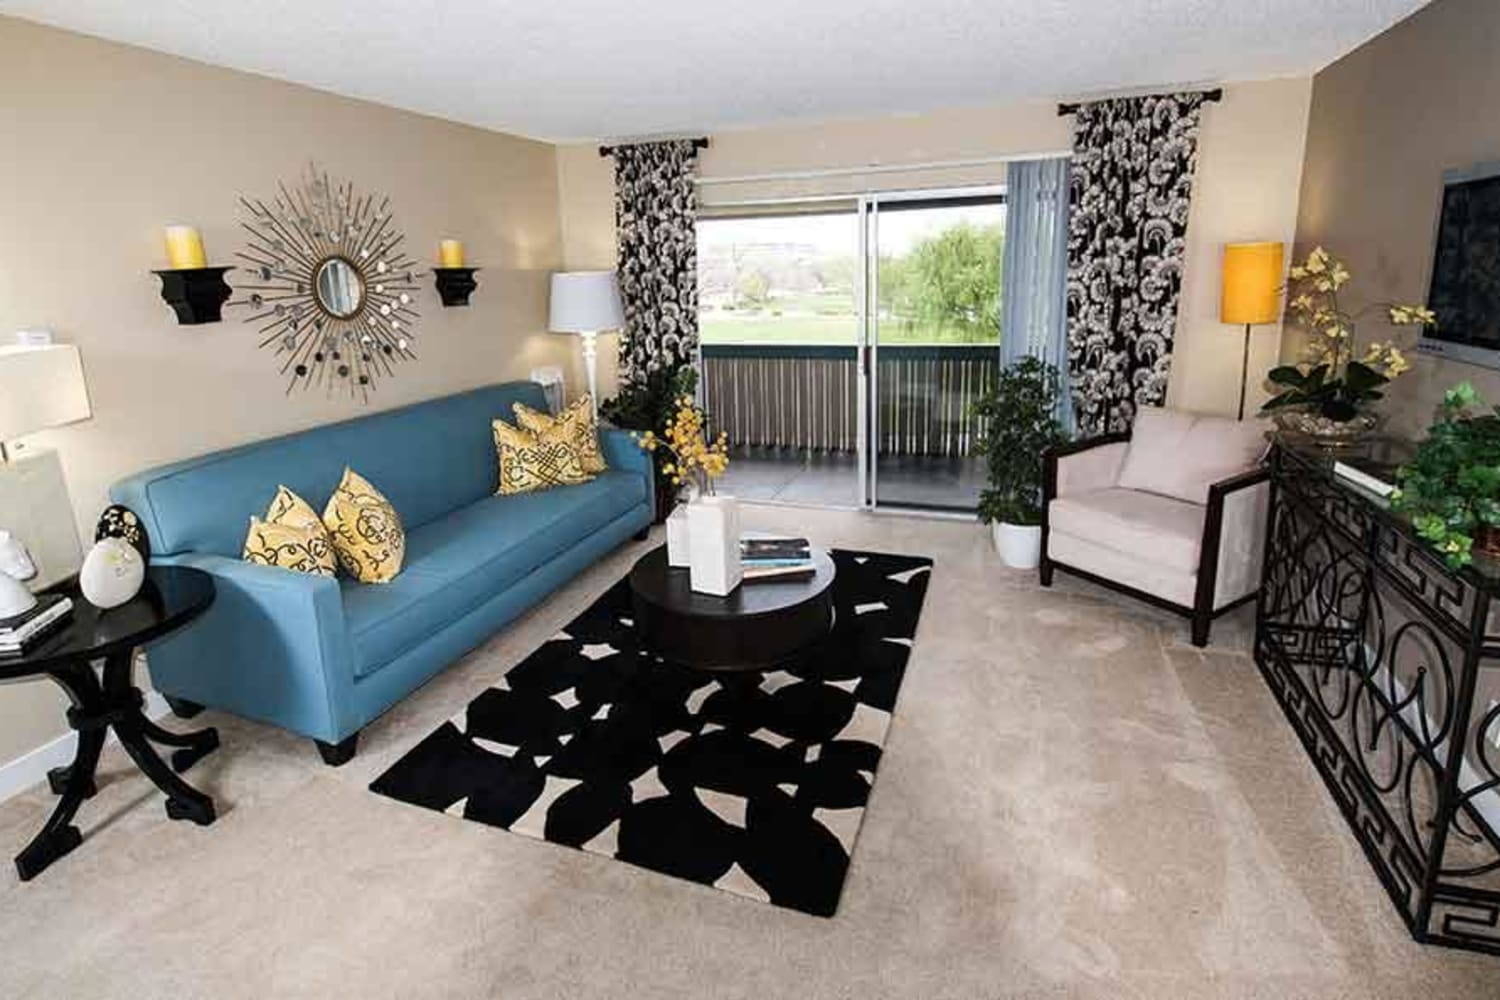 Enjoy a comfortable living space at Harbor Cove Apartments in Foster City, California, complete with a private patio